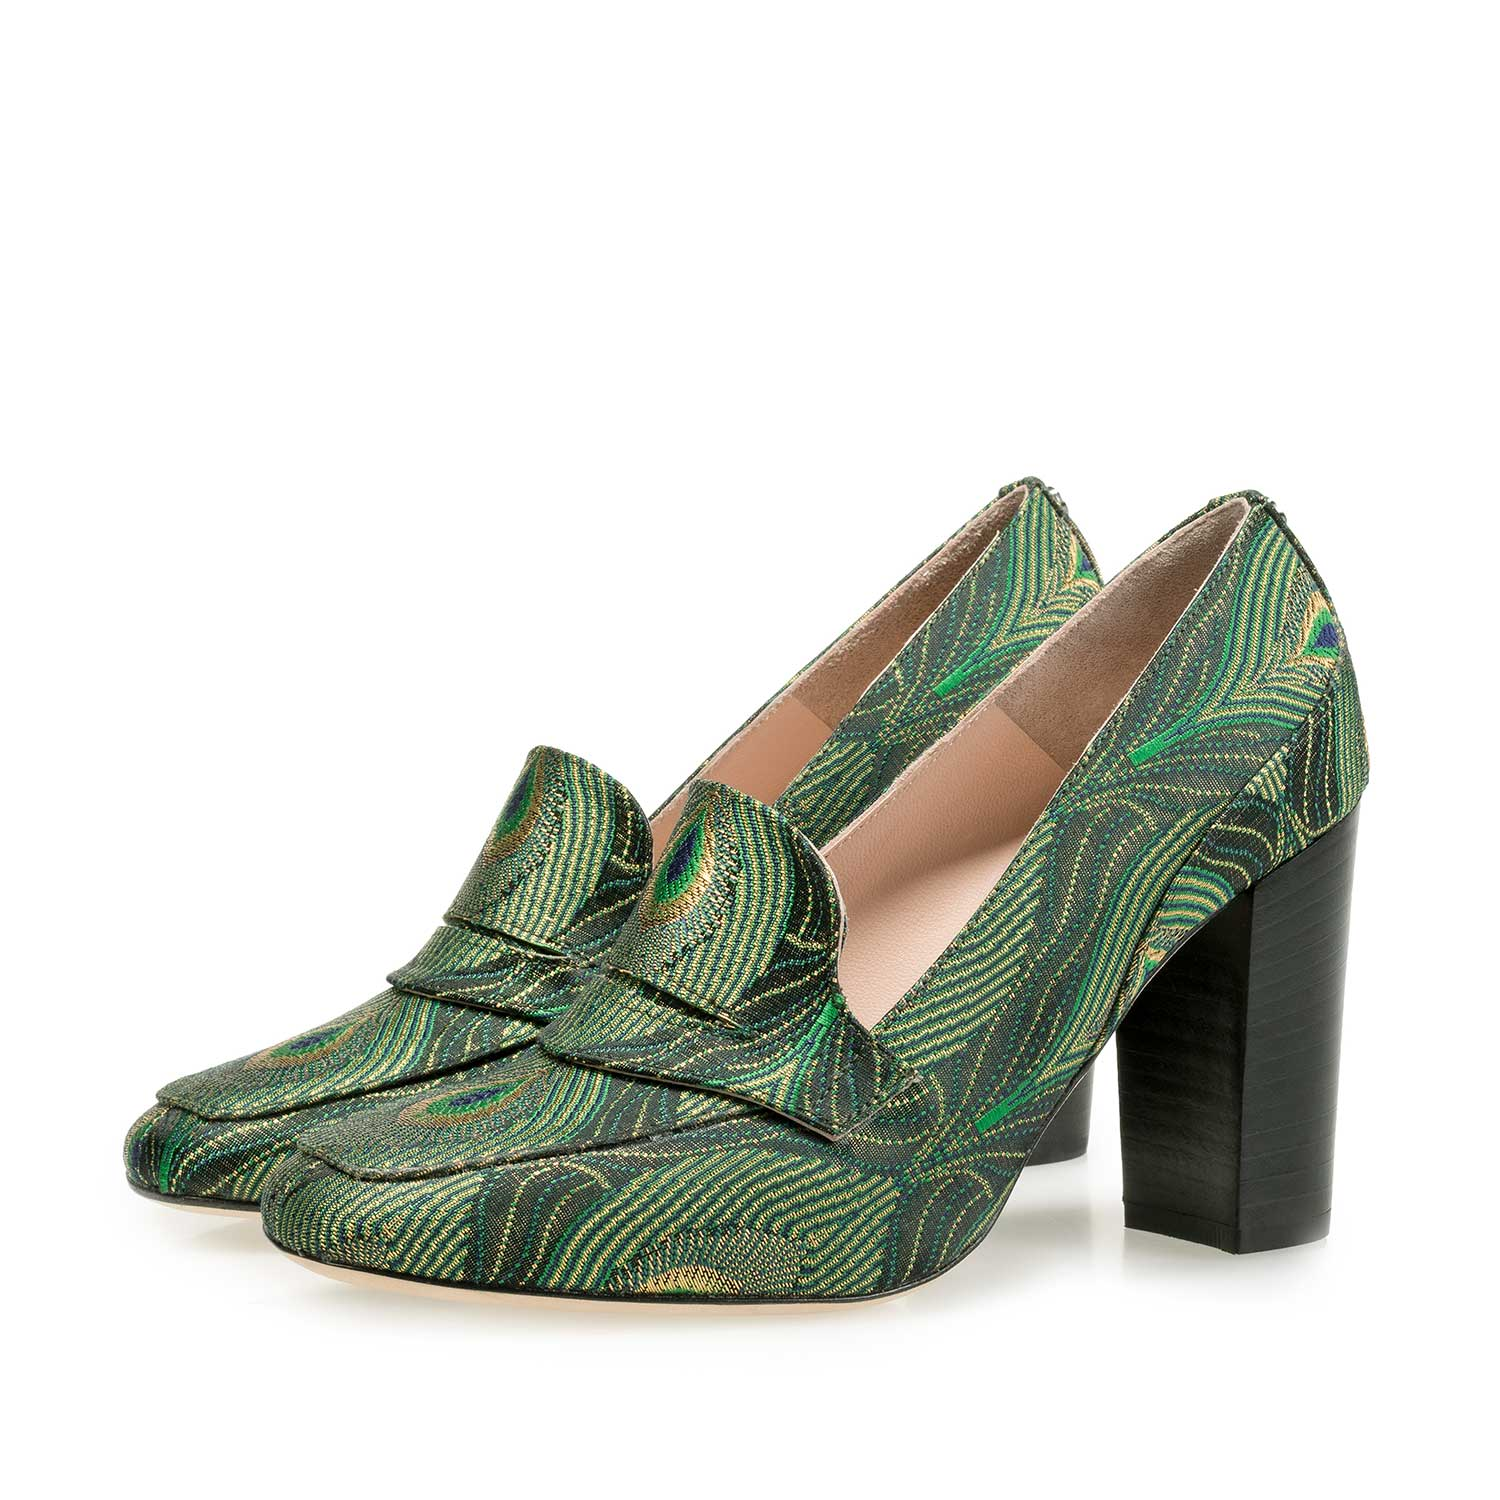 85505/05 - High heels with green peacock print